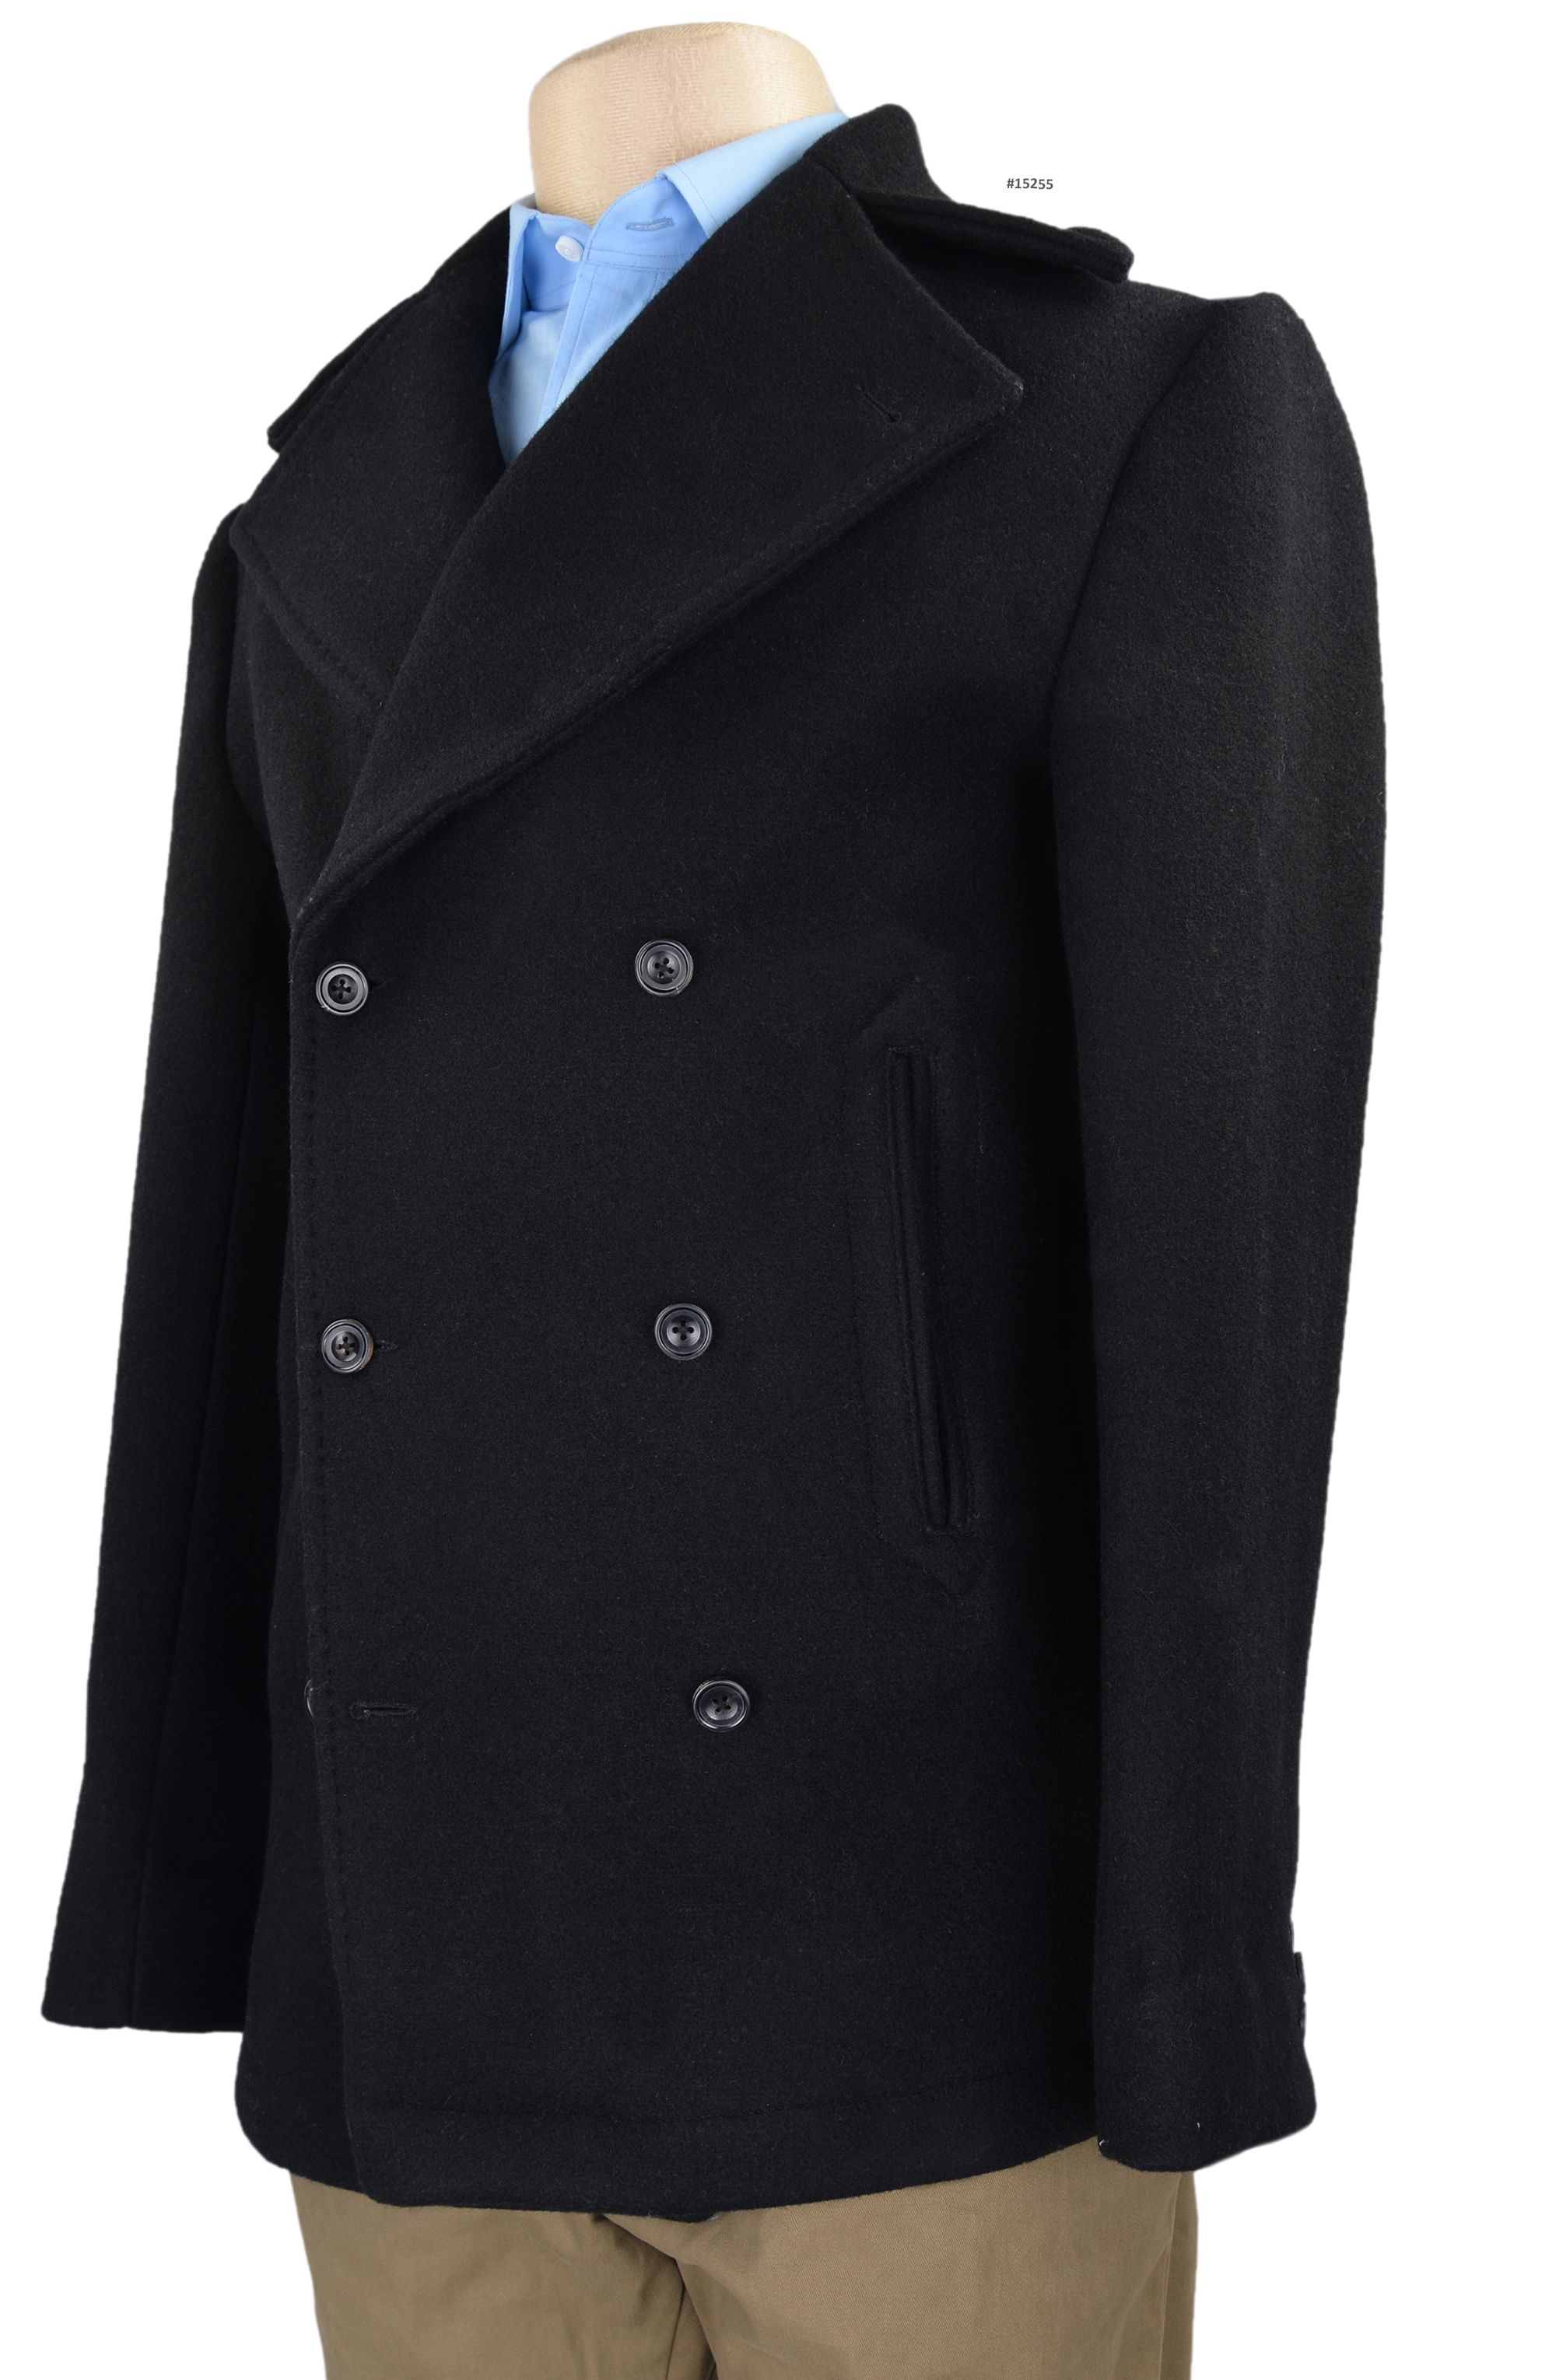 Luxire wool peacoat constructed in Dugdale Black - 25 Oz 100% Wool: http://custom.luxire.com/products/luxire-wool-peacoat  Consists of handwork at collar, lapel, quarter and pockets.  Buttons: Black horn buttons.